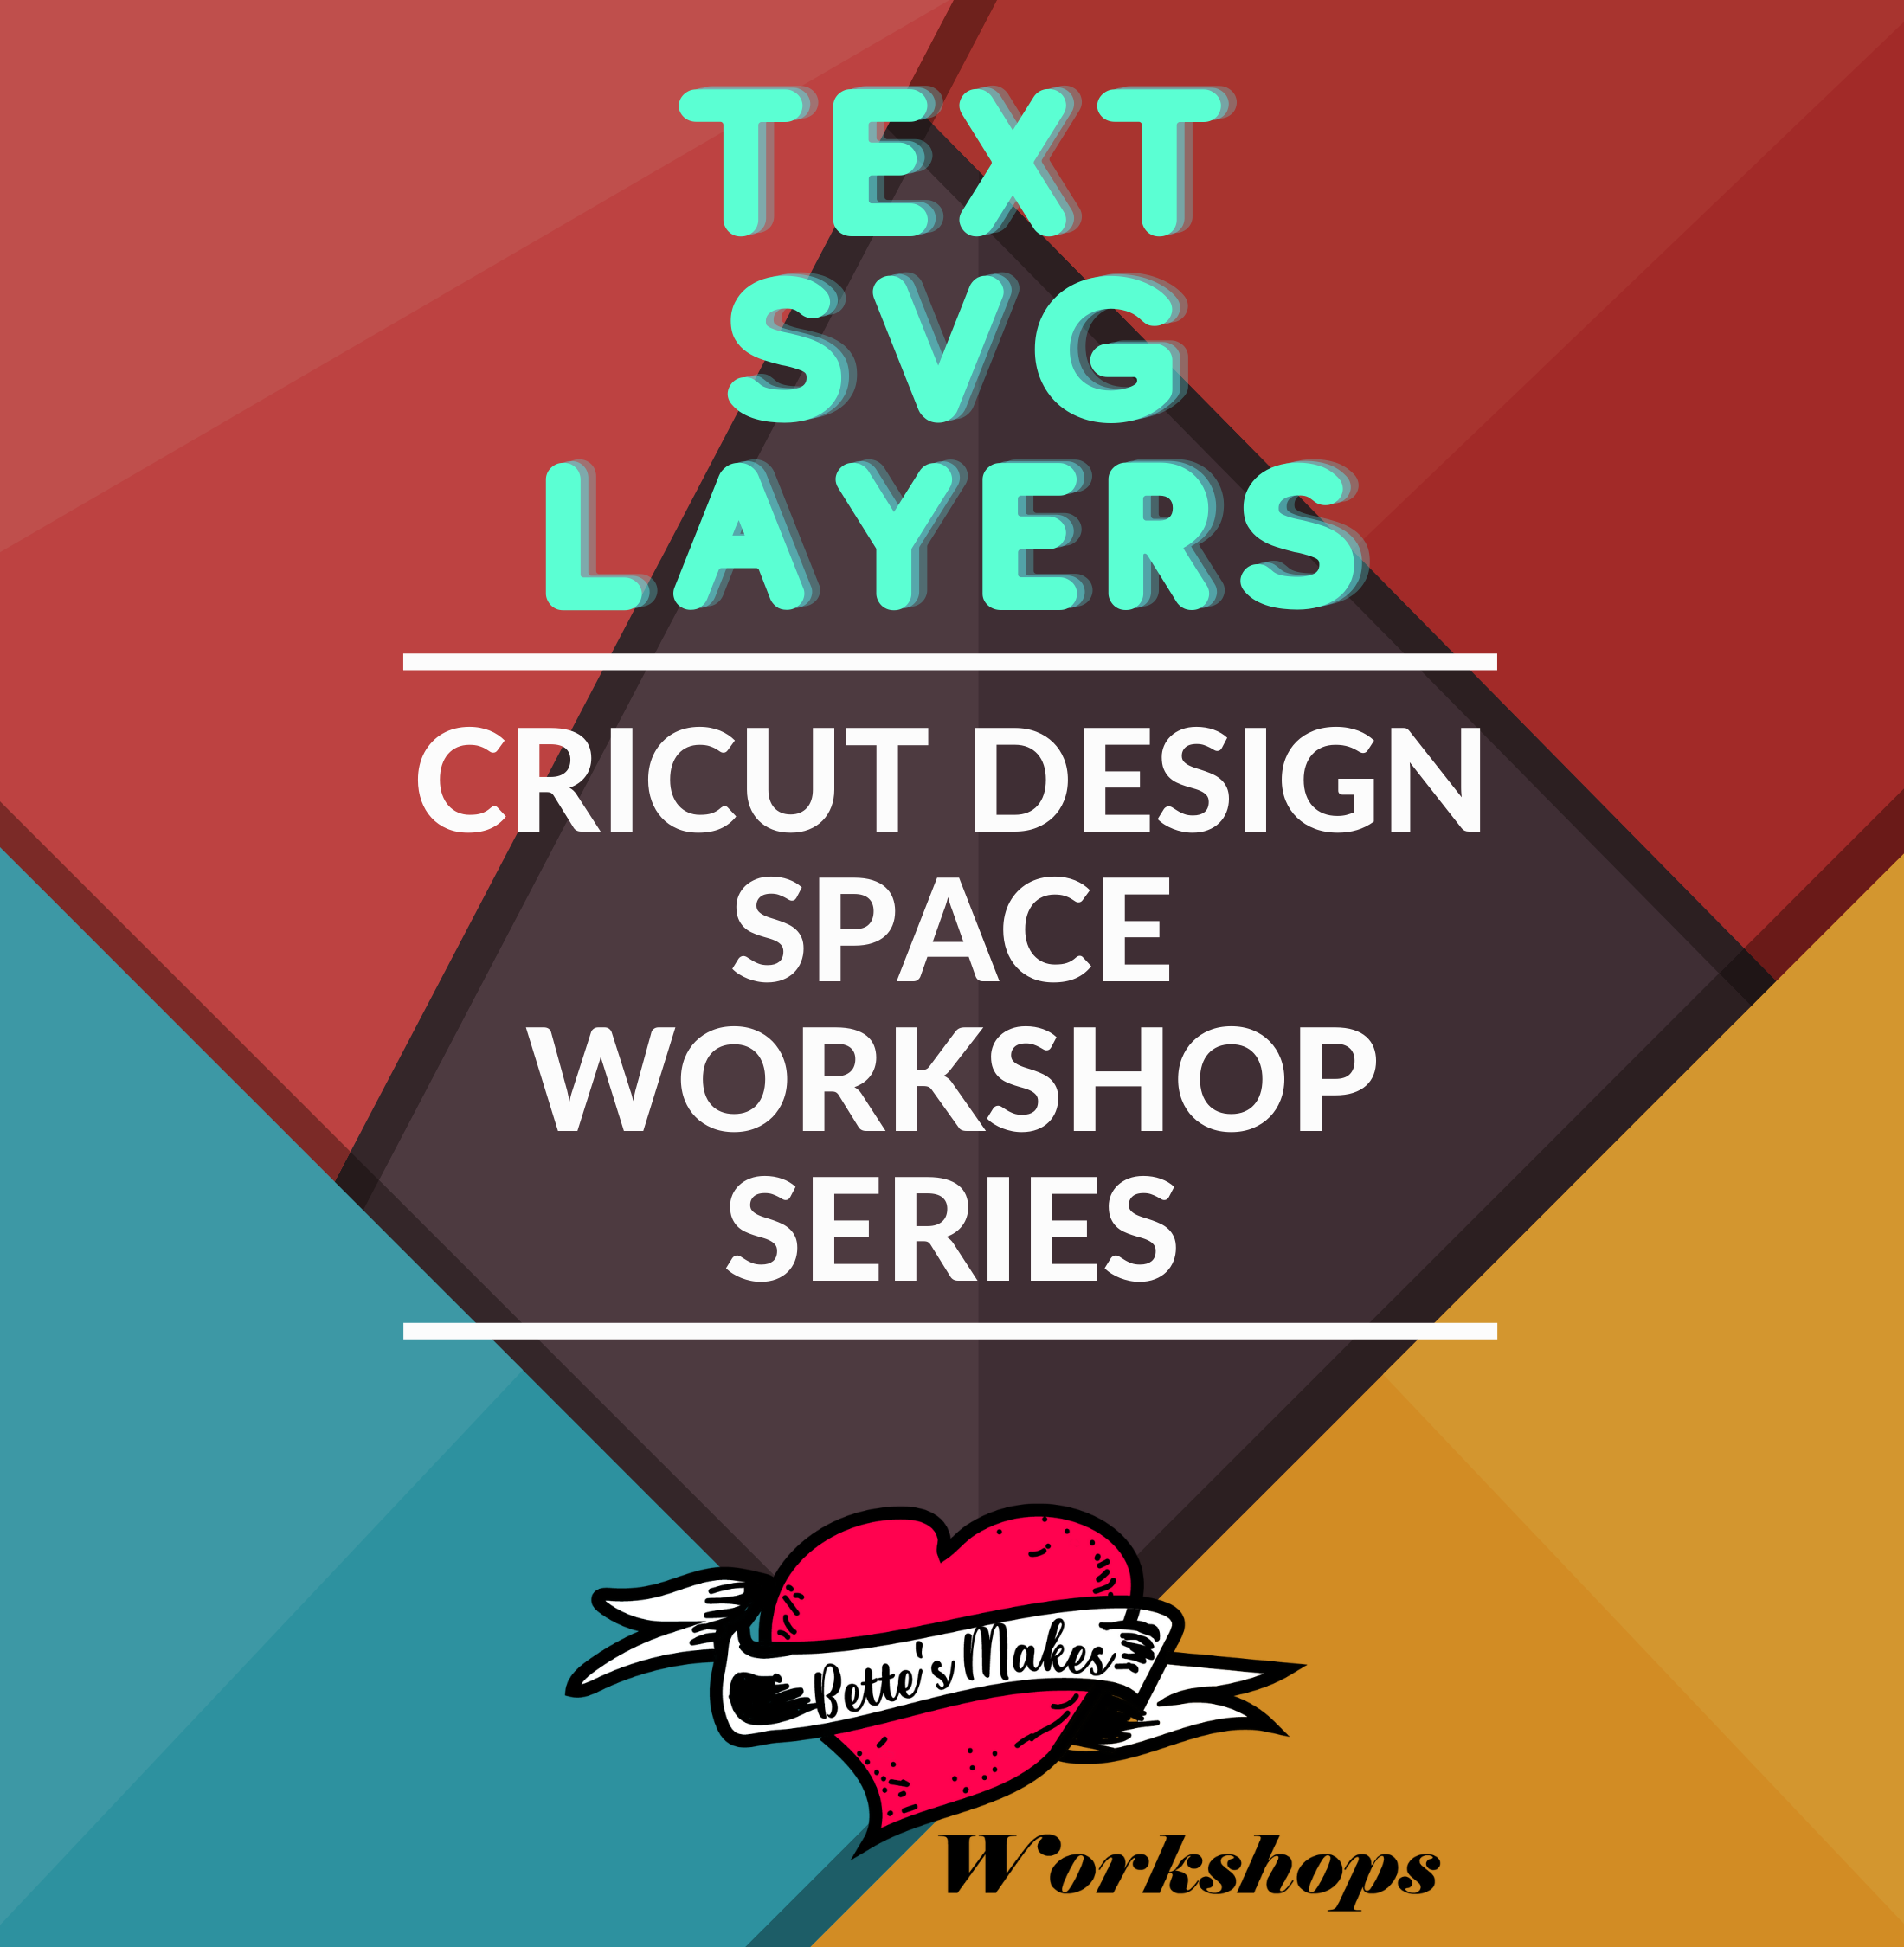 BettesMakes Academy Workshop Series 1 - Text, SVG, and Layers